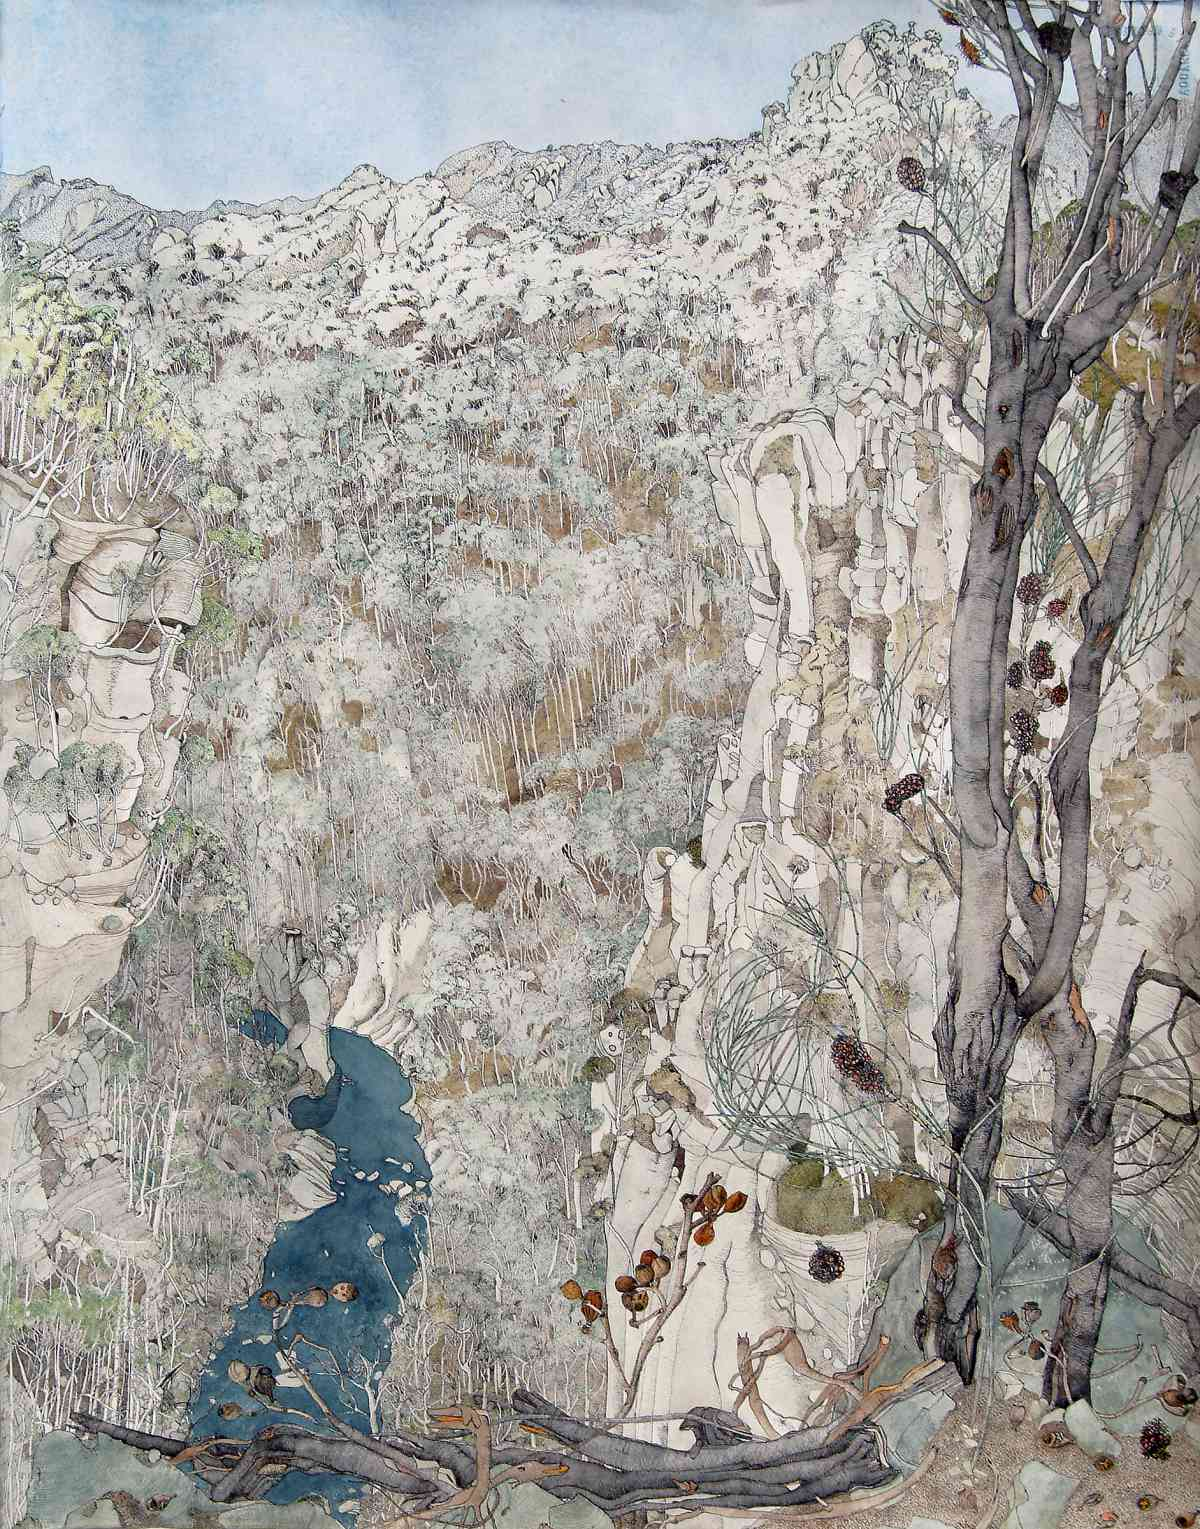 Following the Mersey, Tasmania 2004, Watercolour with ink, Triptych, 60 x 185cm